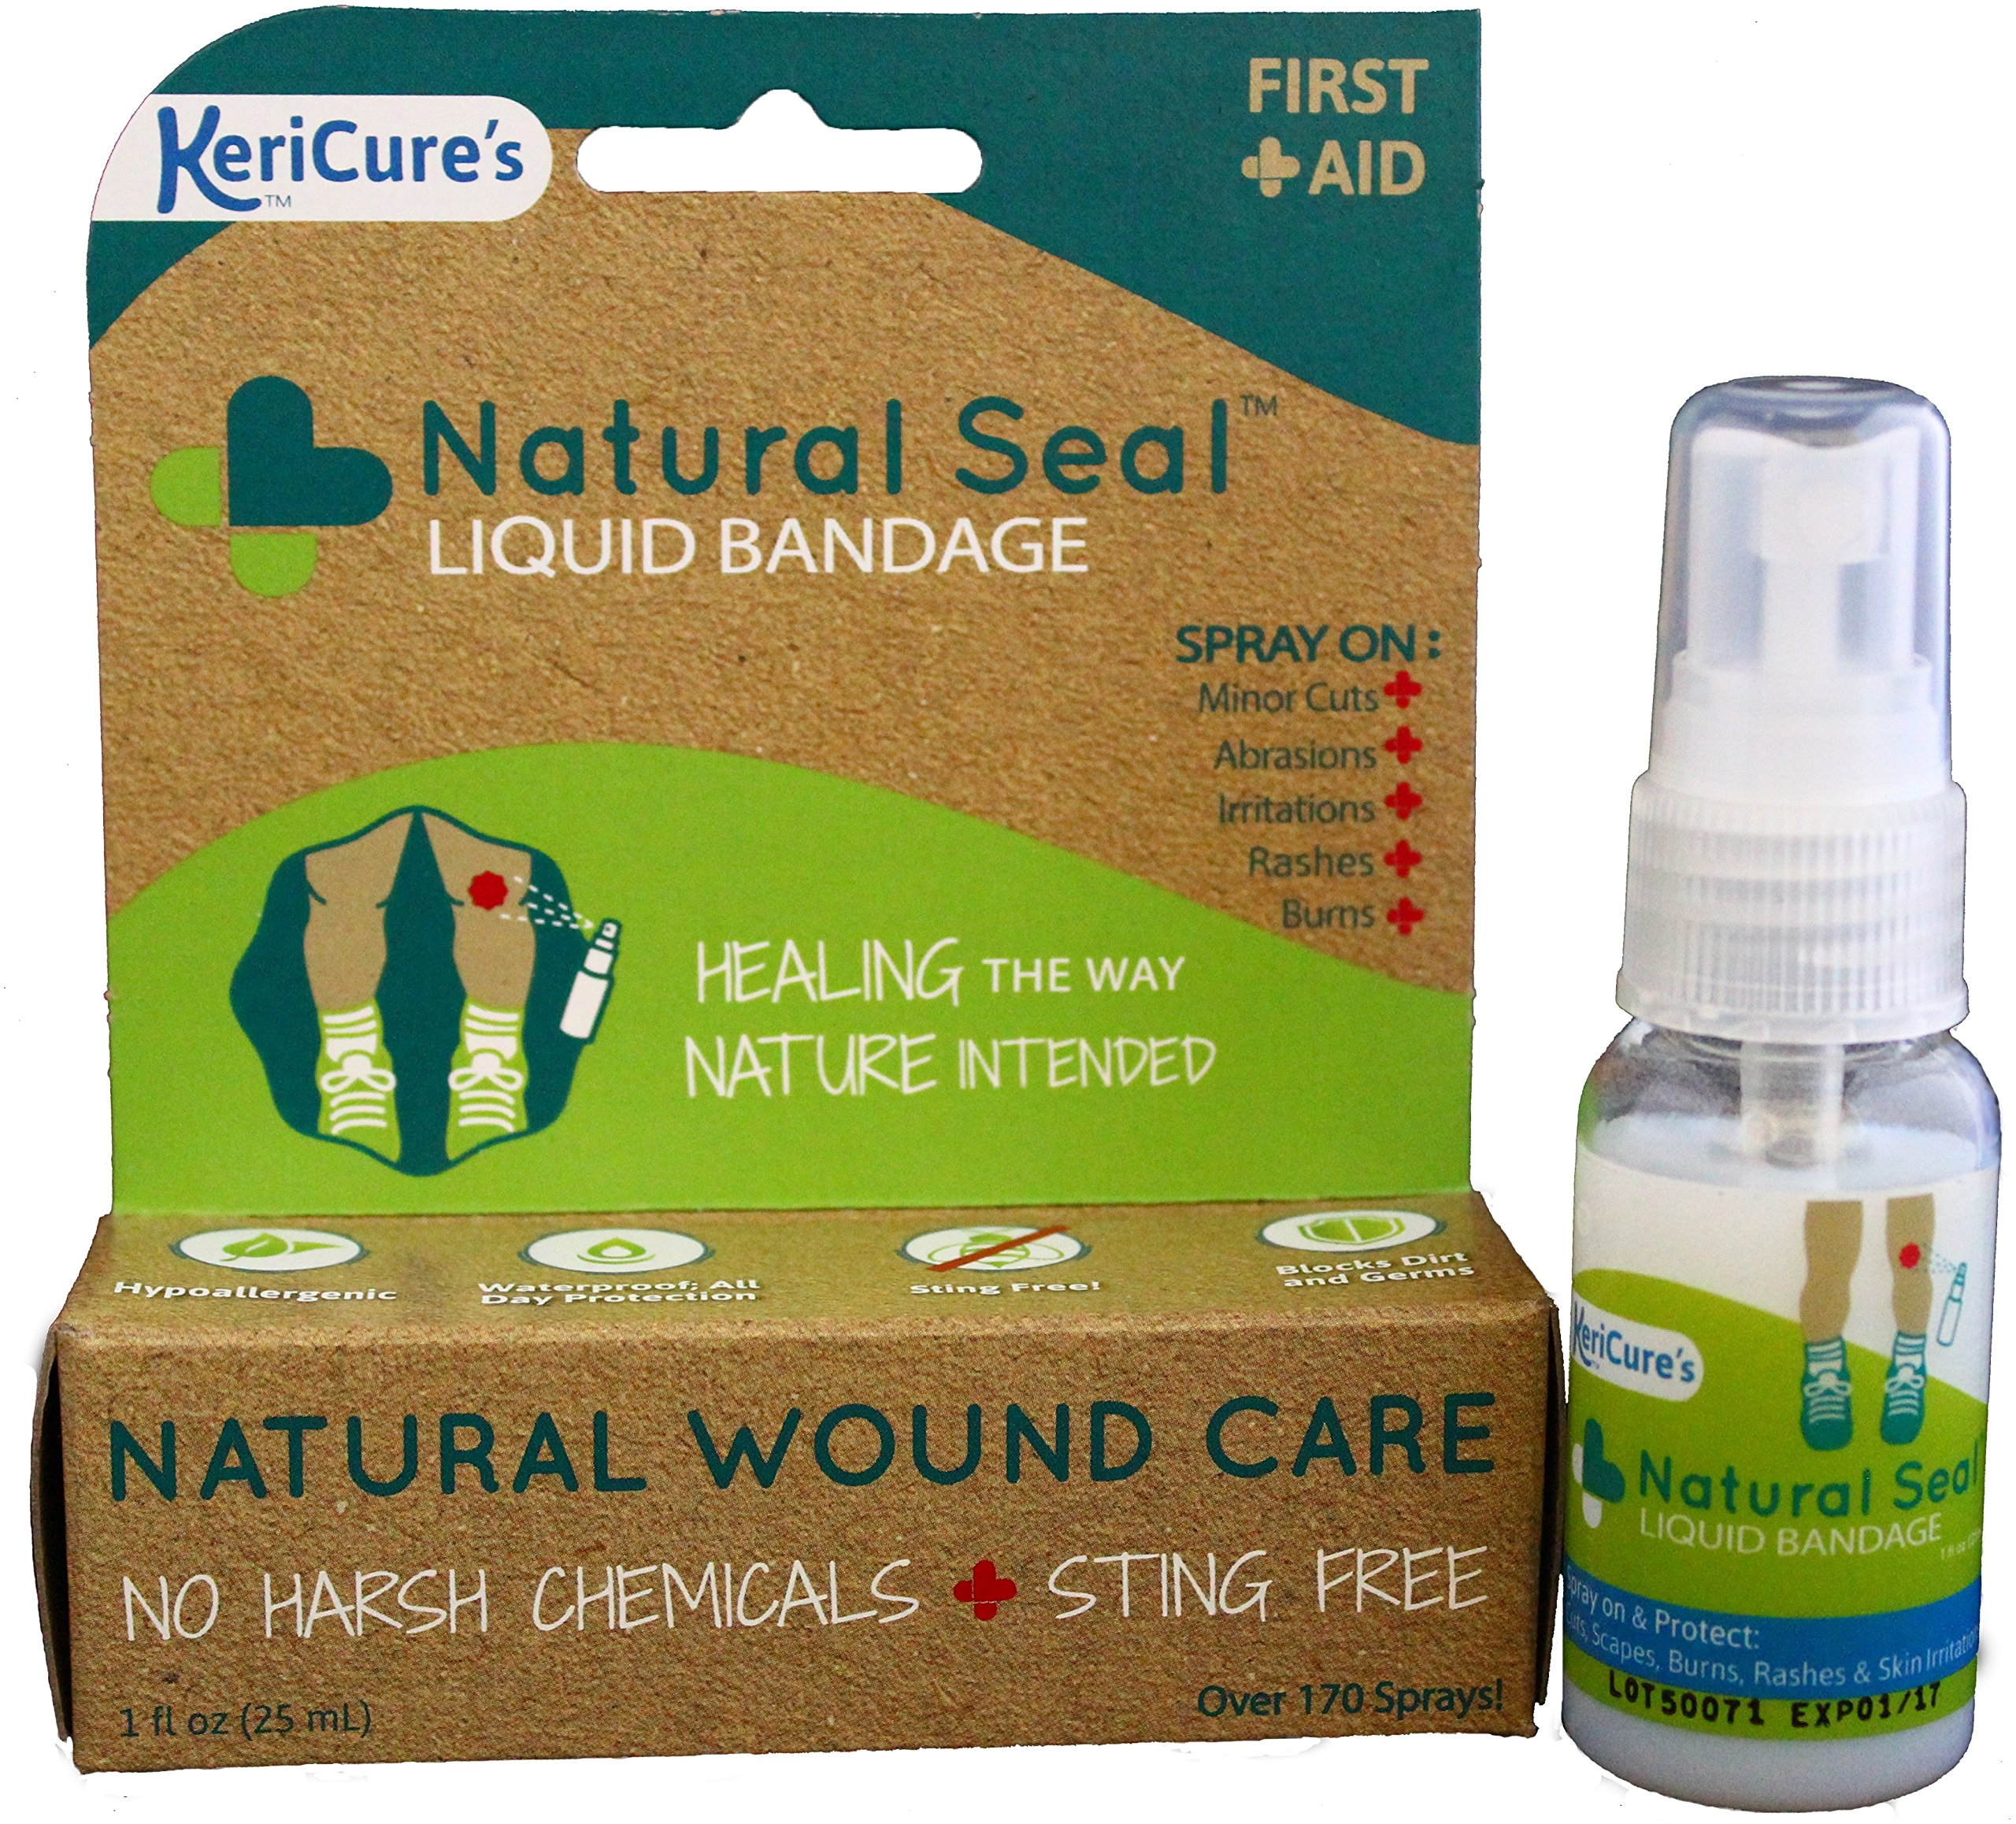 KeriCure's Natural Seal Invisible Liquid Bandage, 2 Pack, Soothe, Seal and Protect Small cuts, scrapes, rashes and More - NO Harsh Chemicals - Sting Free - Moisturizing Spray on Bandage by KeriCure